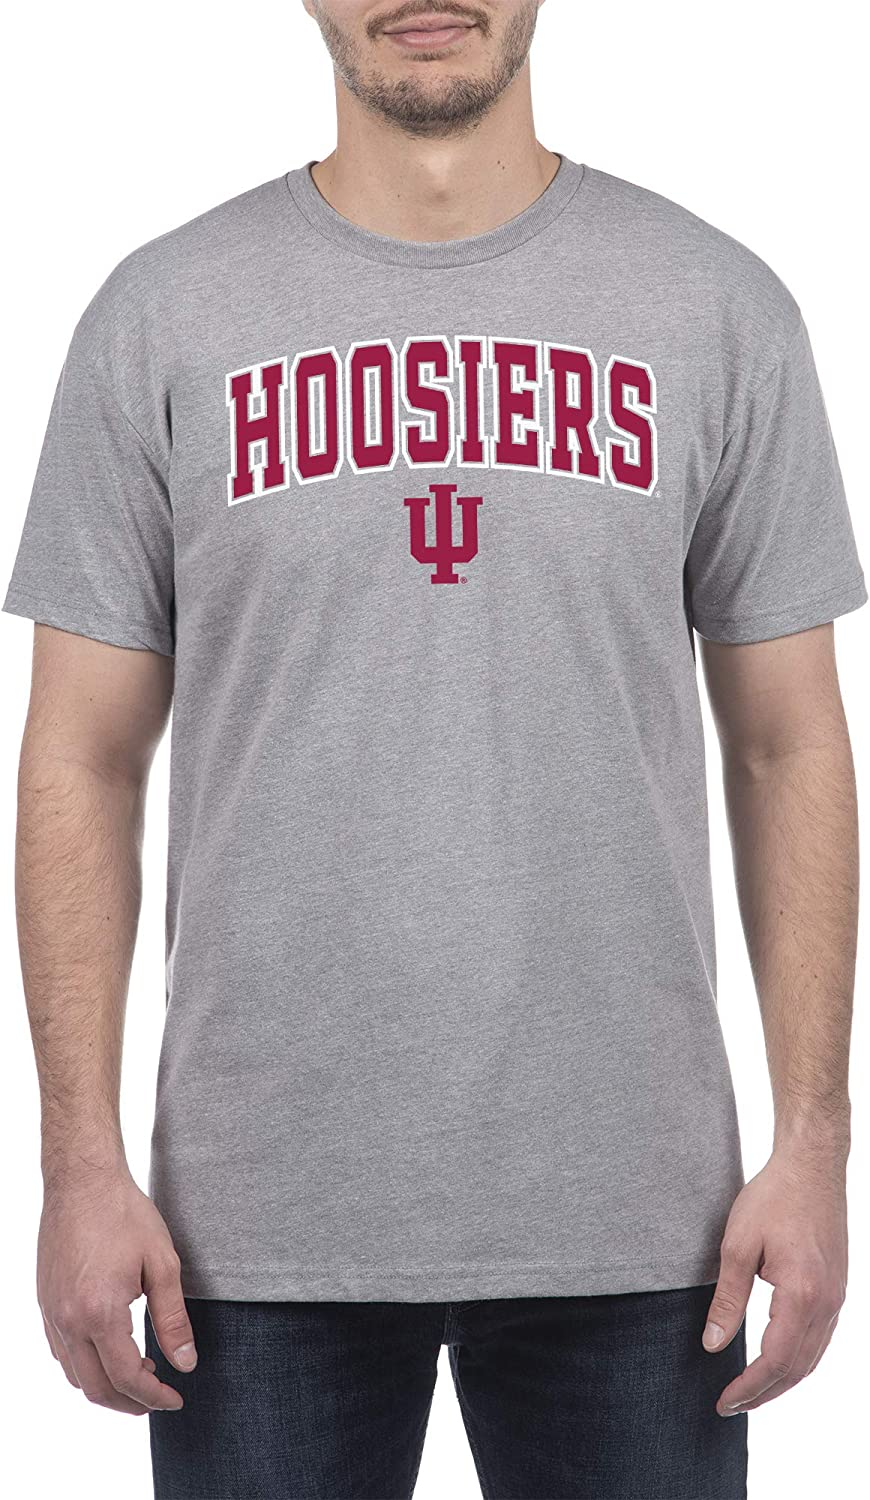 Top of the World NCAA Mens Organic Cotton and Recycled Poly Gray Heather Short Sleeve T